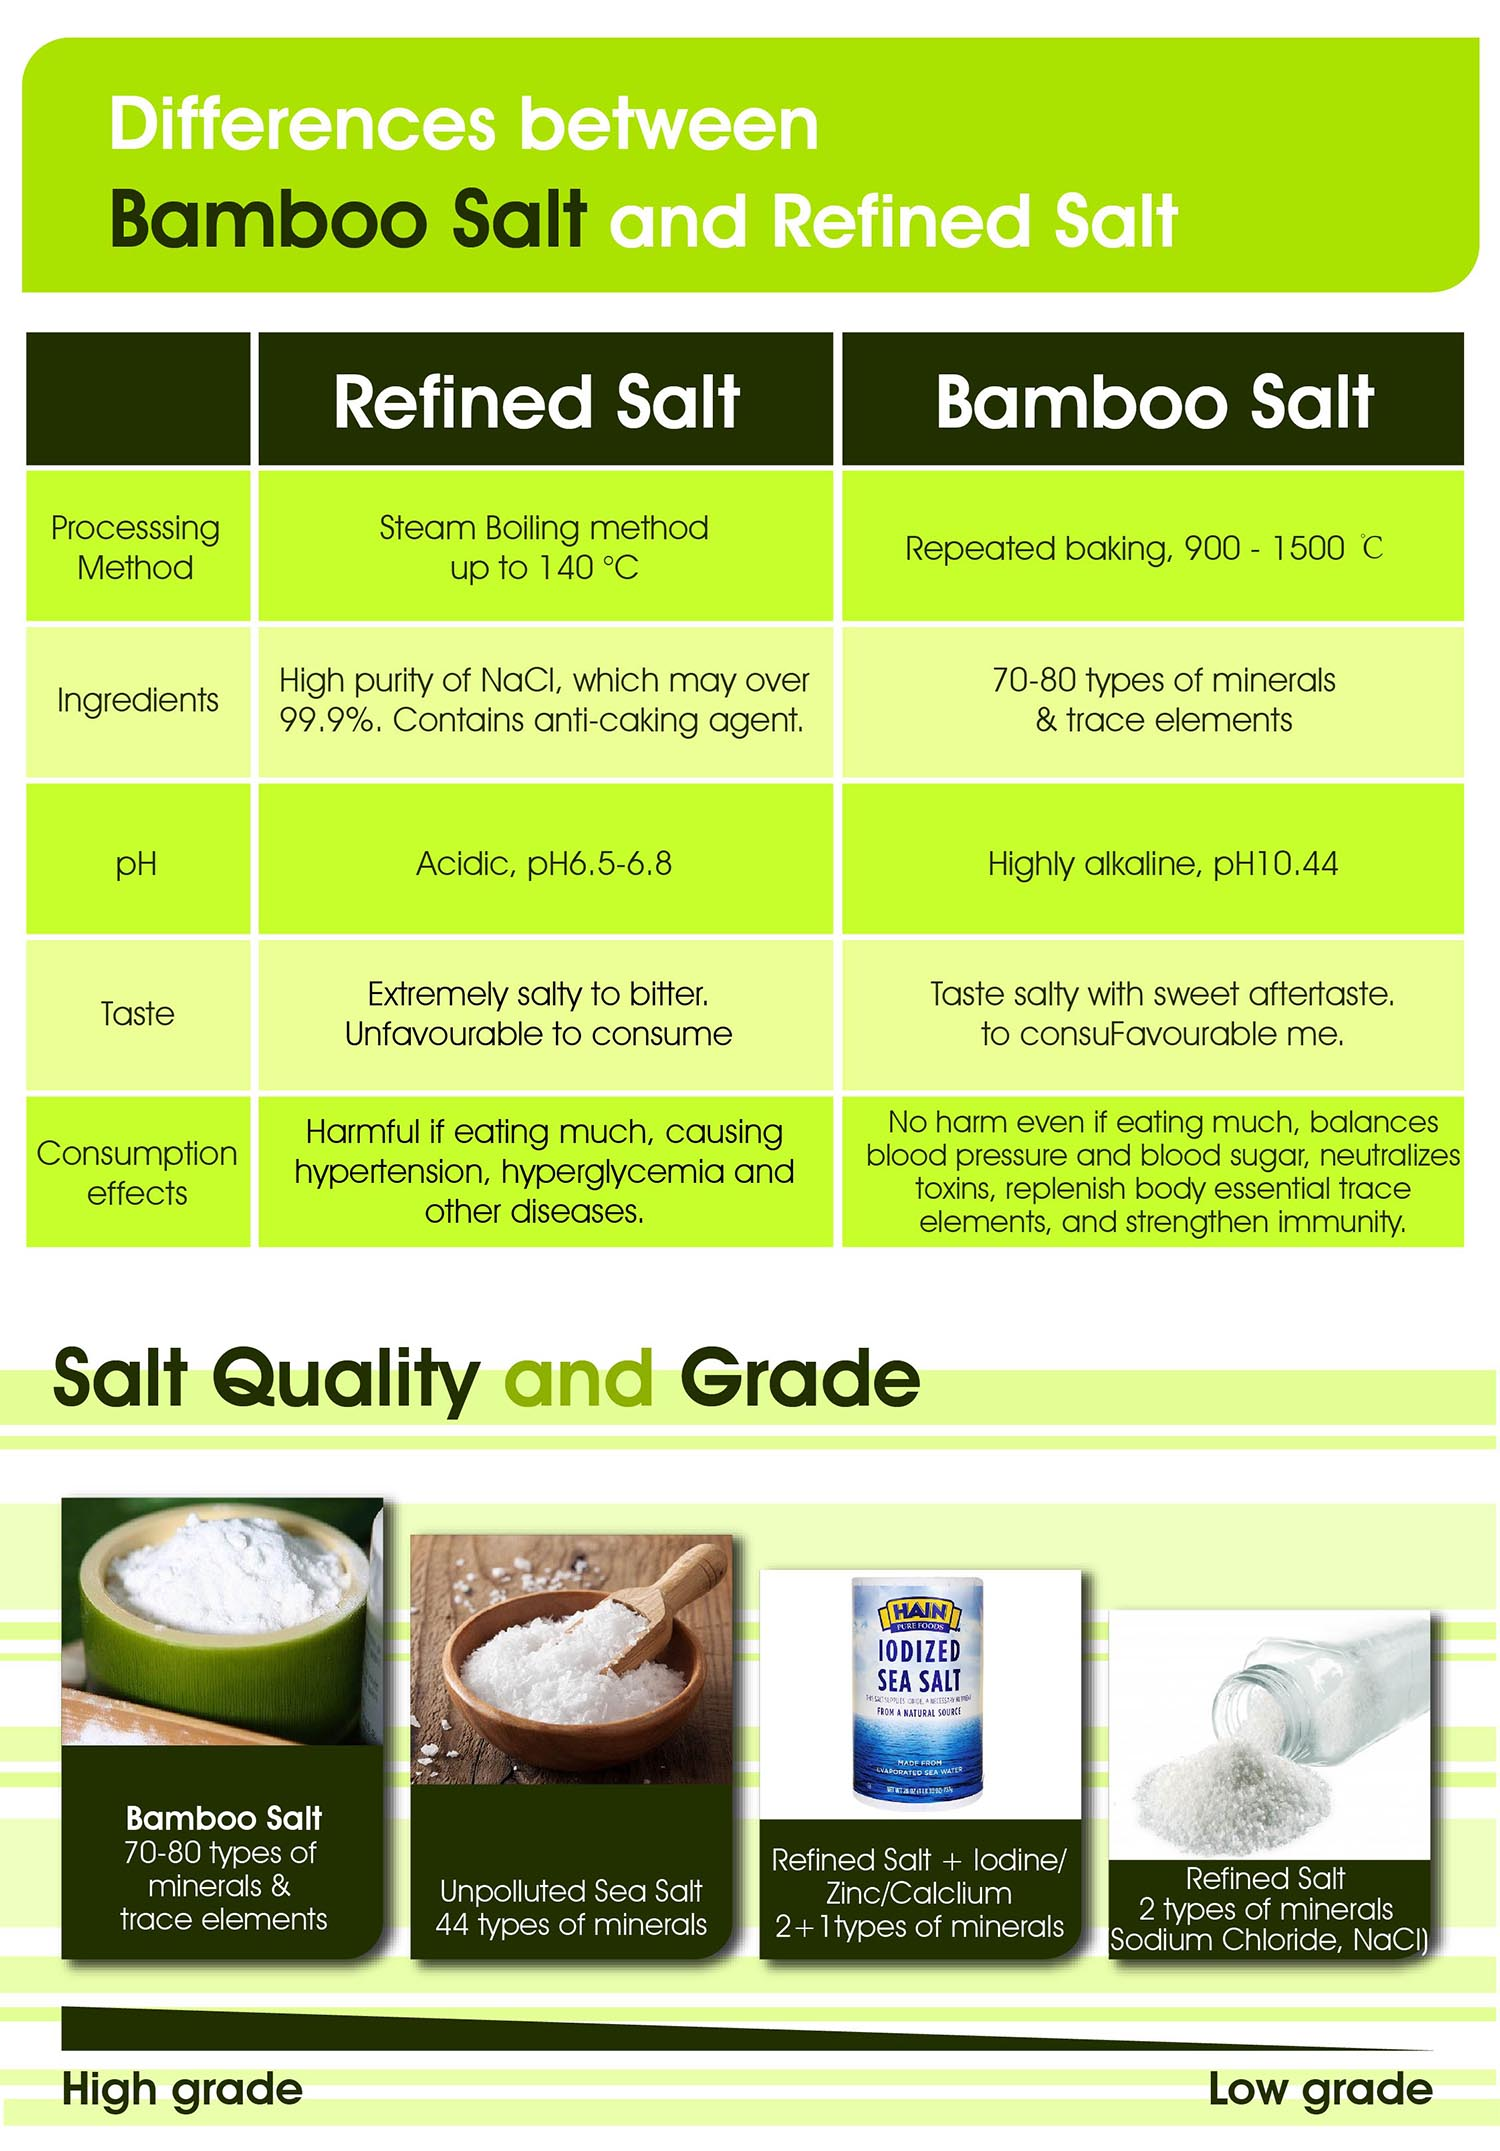 hk111 bamboo salt vs refined salt